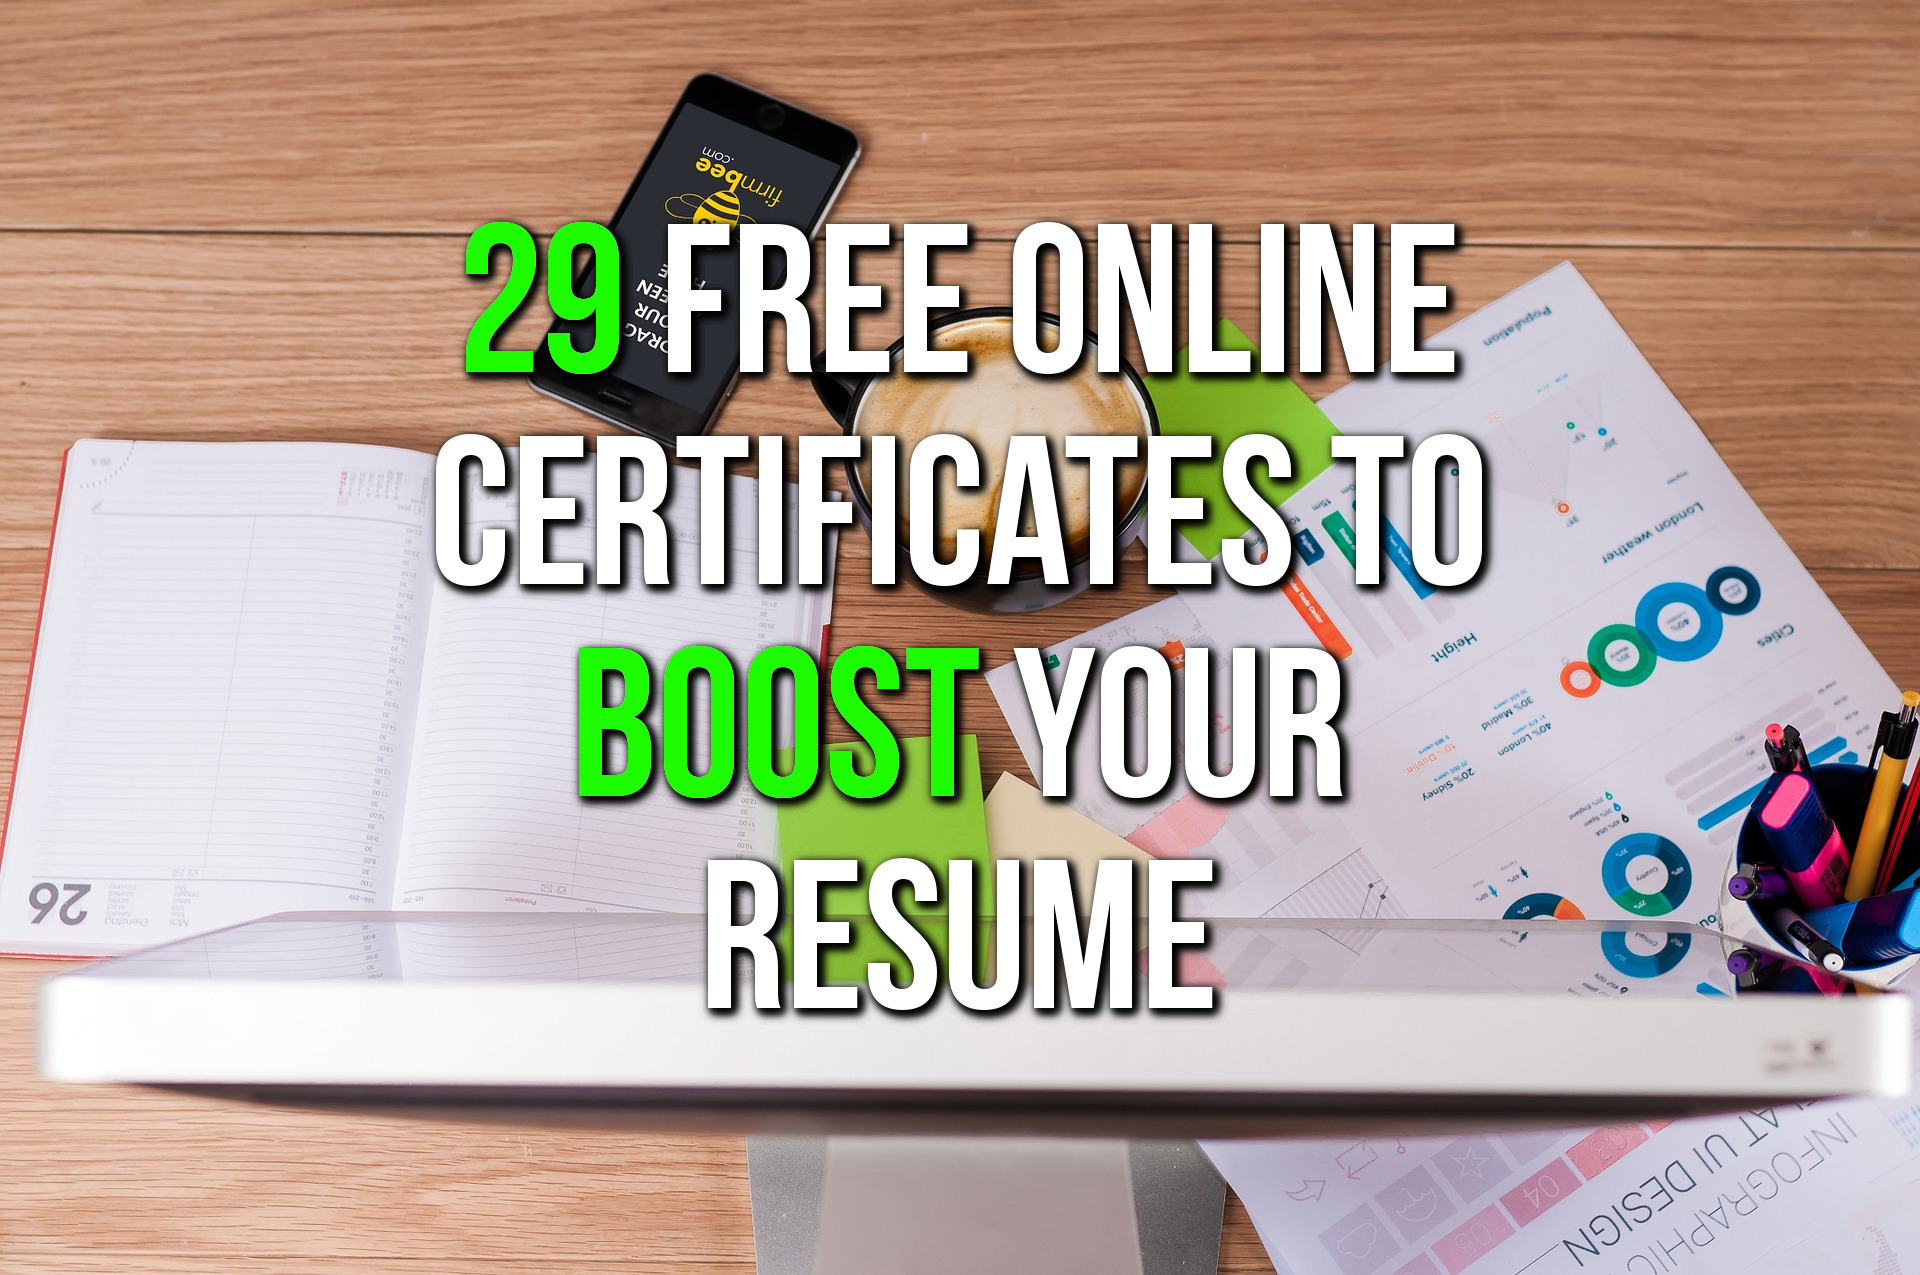 Free Online Courses With Certificates - CV Building - Life Hacks